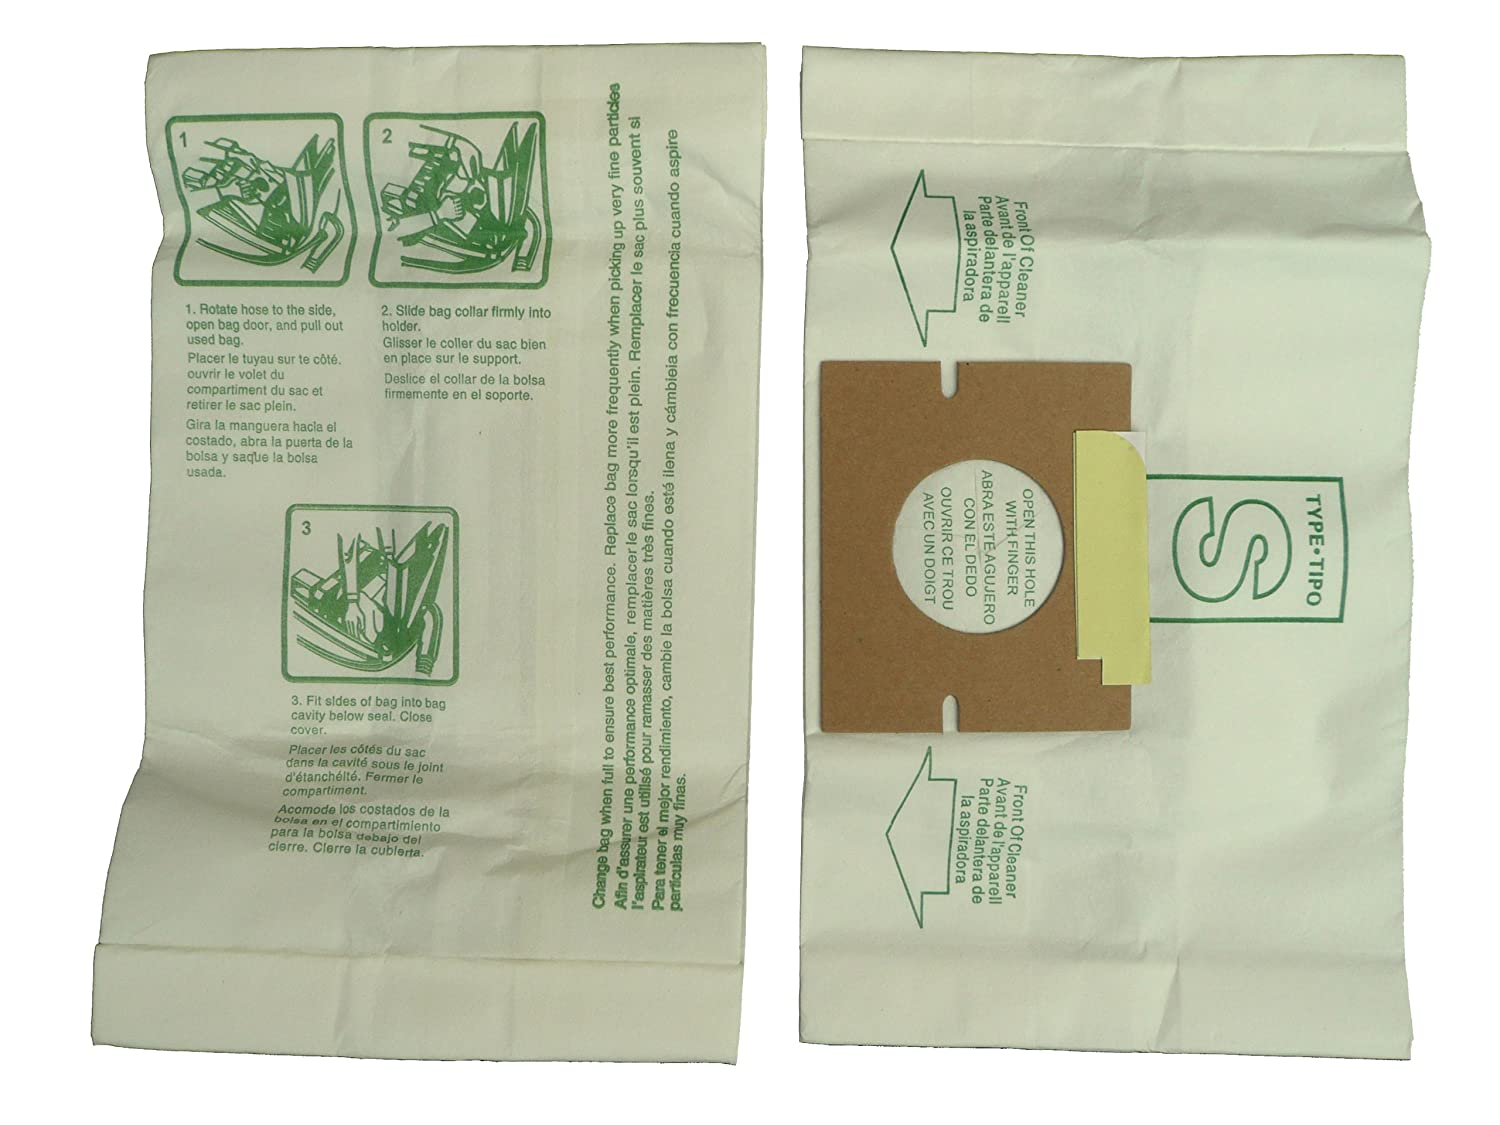 9 Hoover Windtunnel Allergy Vacuum Type S Bags, Futura, Spectrum, Power Max Vacuum Cleaners, 43655097, 4010064S, 4010344S, 43655093, 4010100S